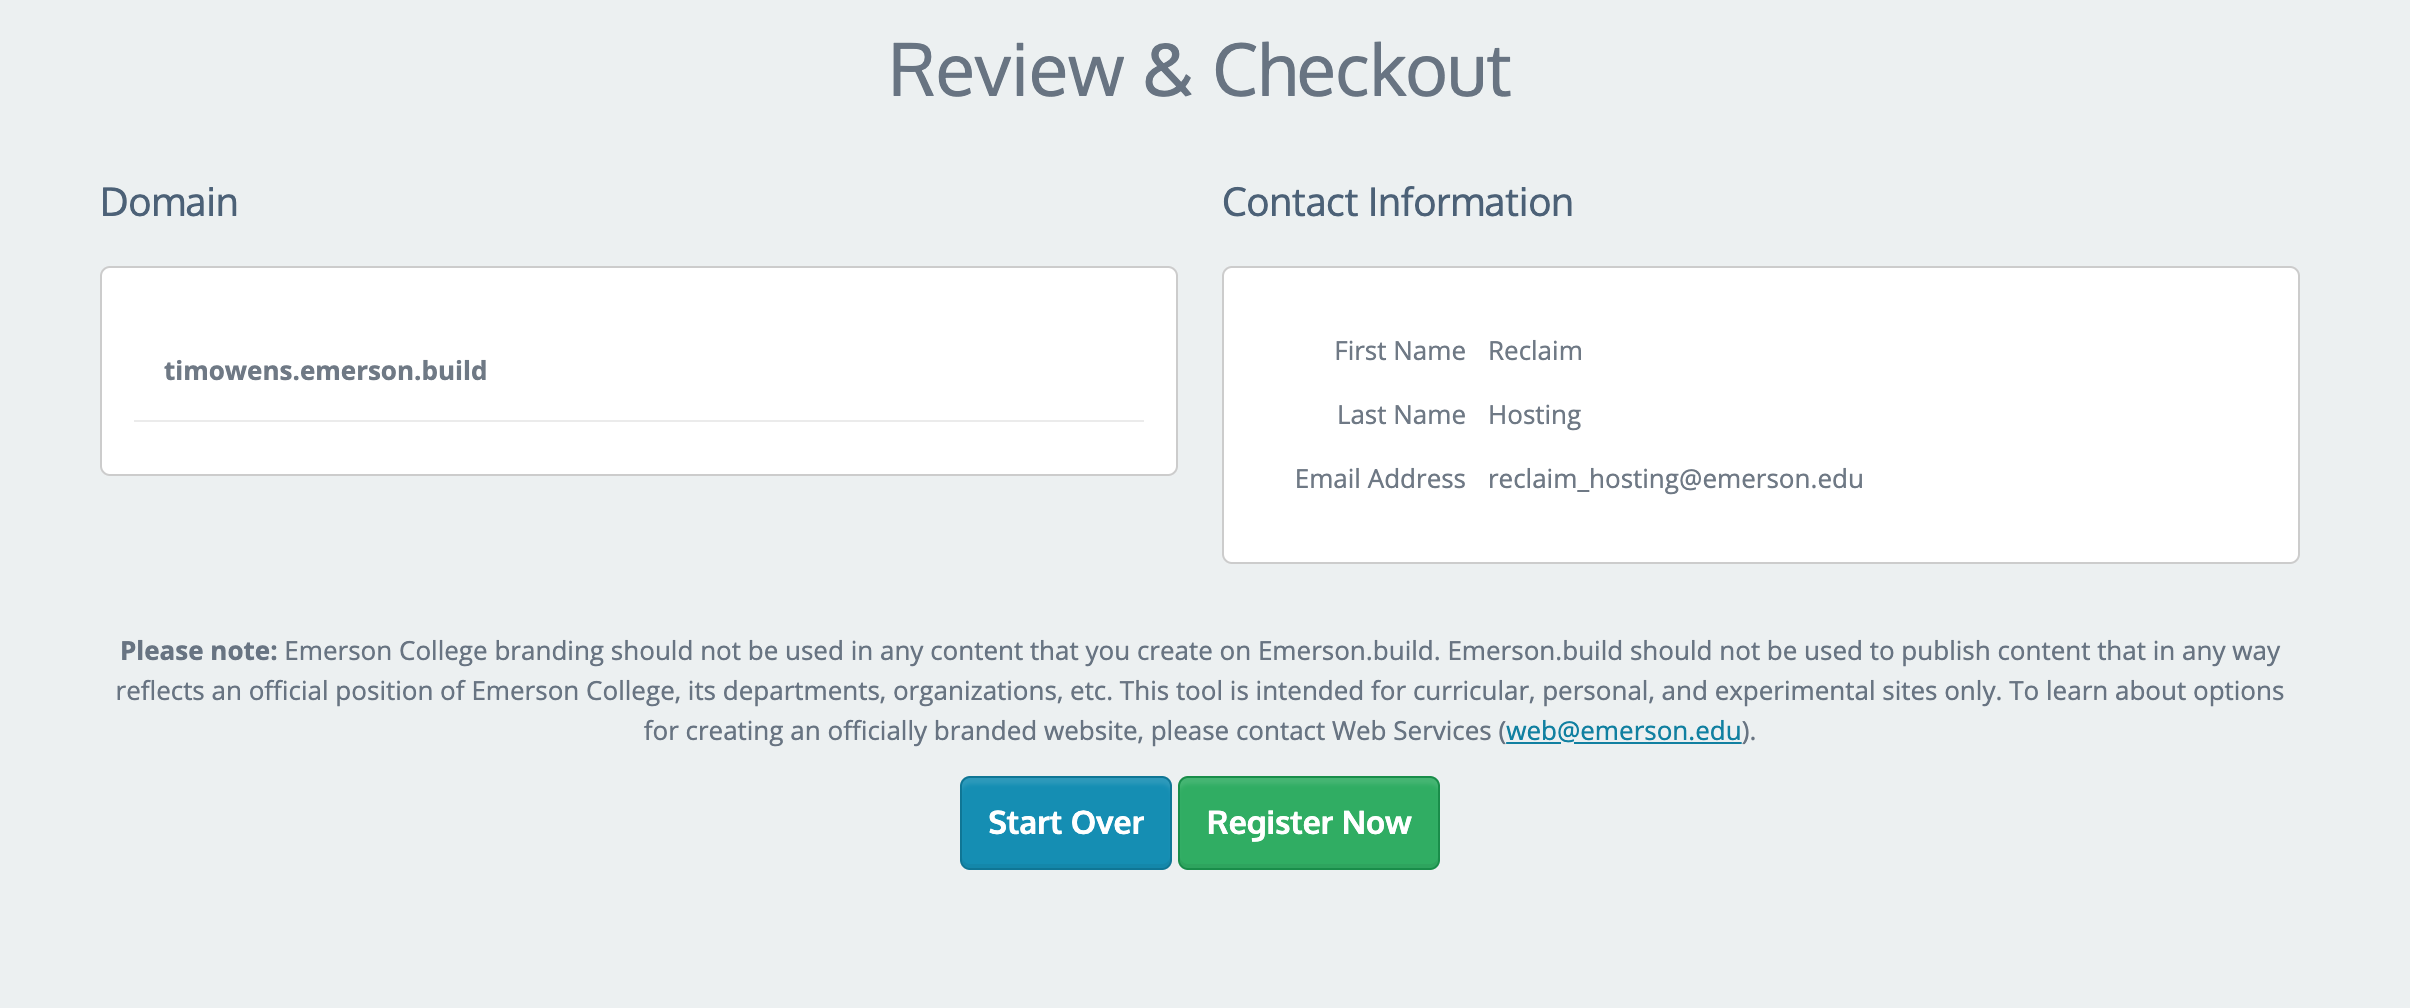 The Review and Checkout screen, with a button to Start Over or Register Now.